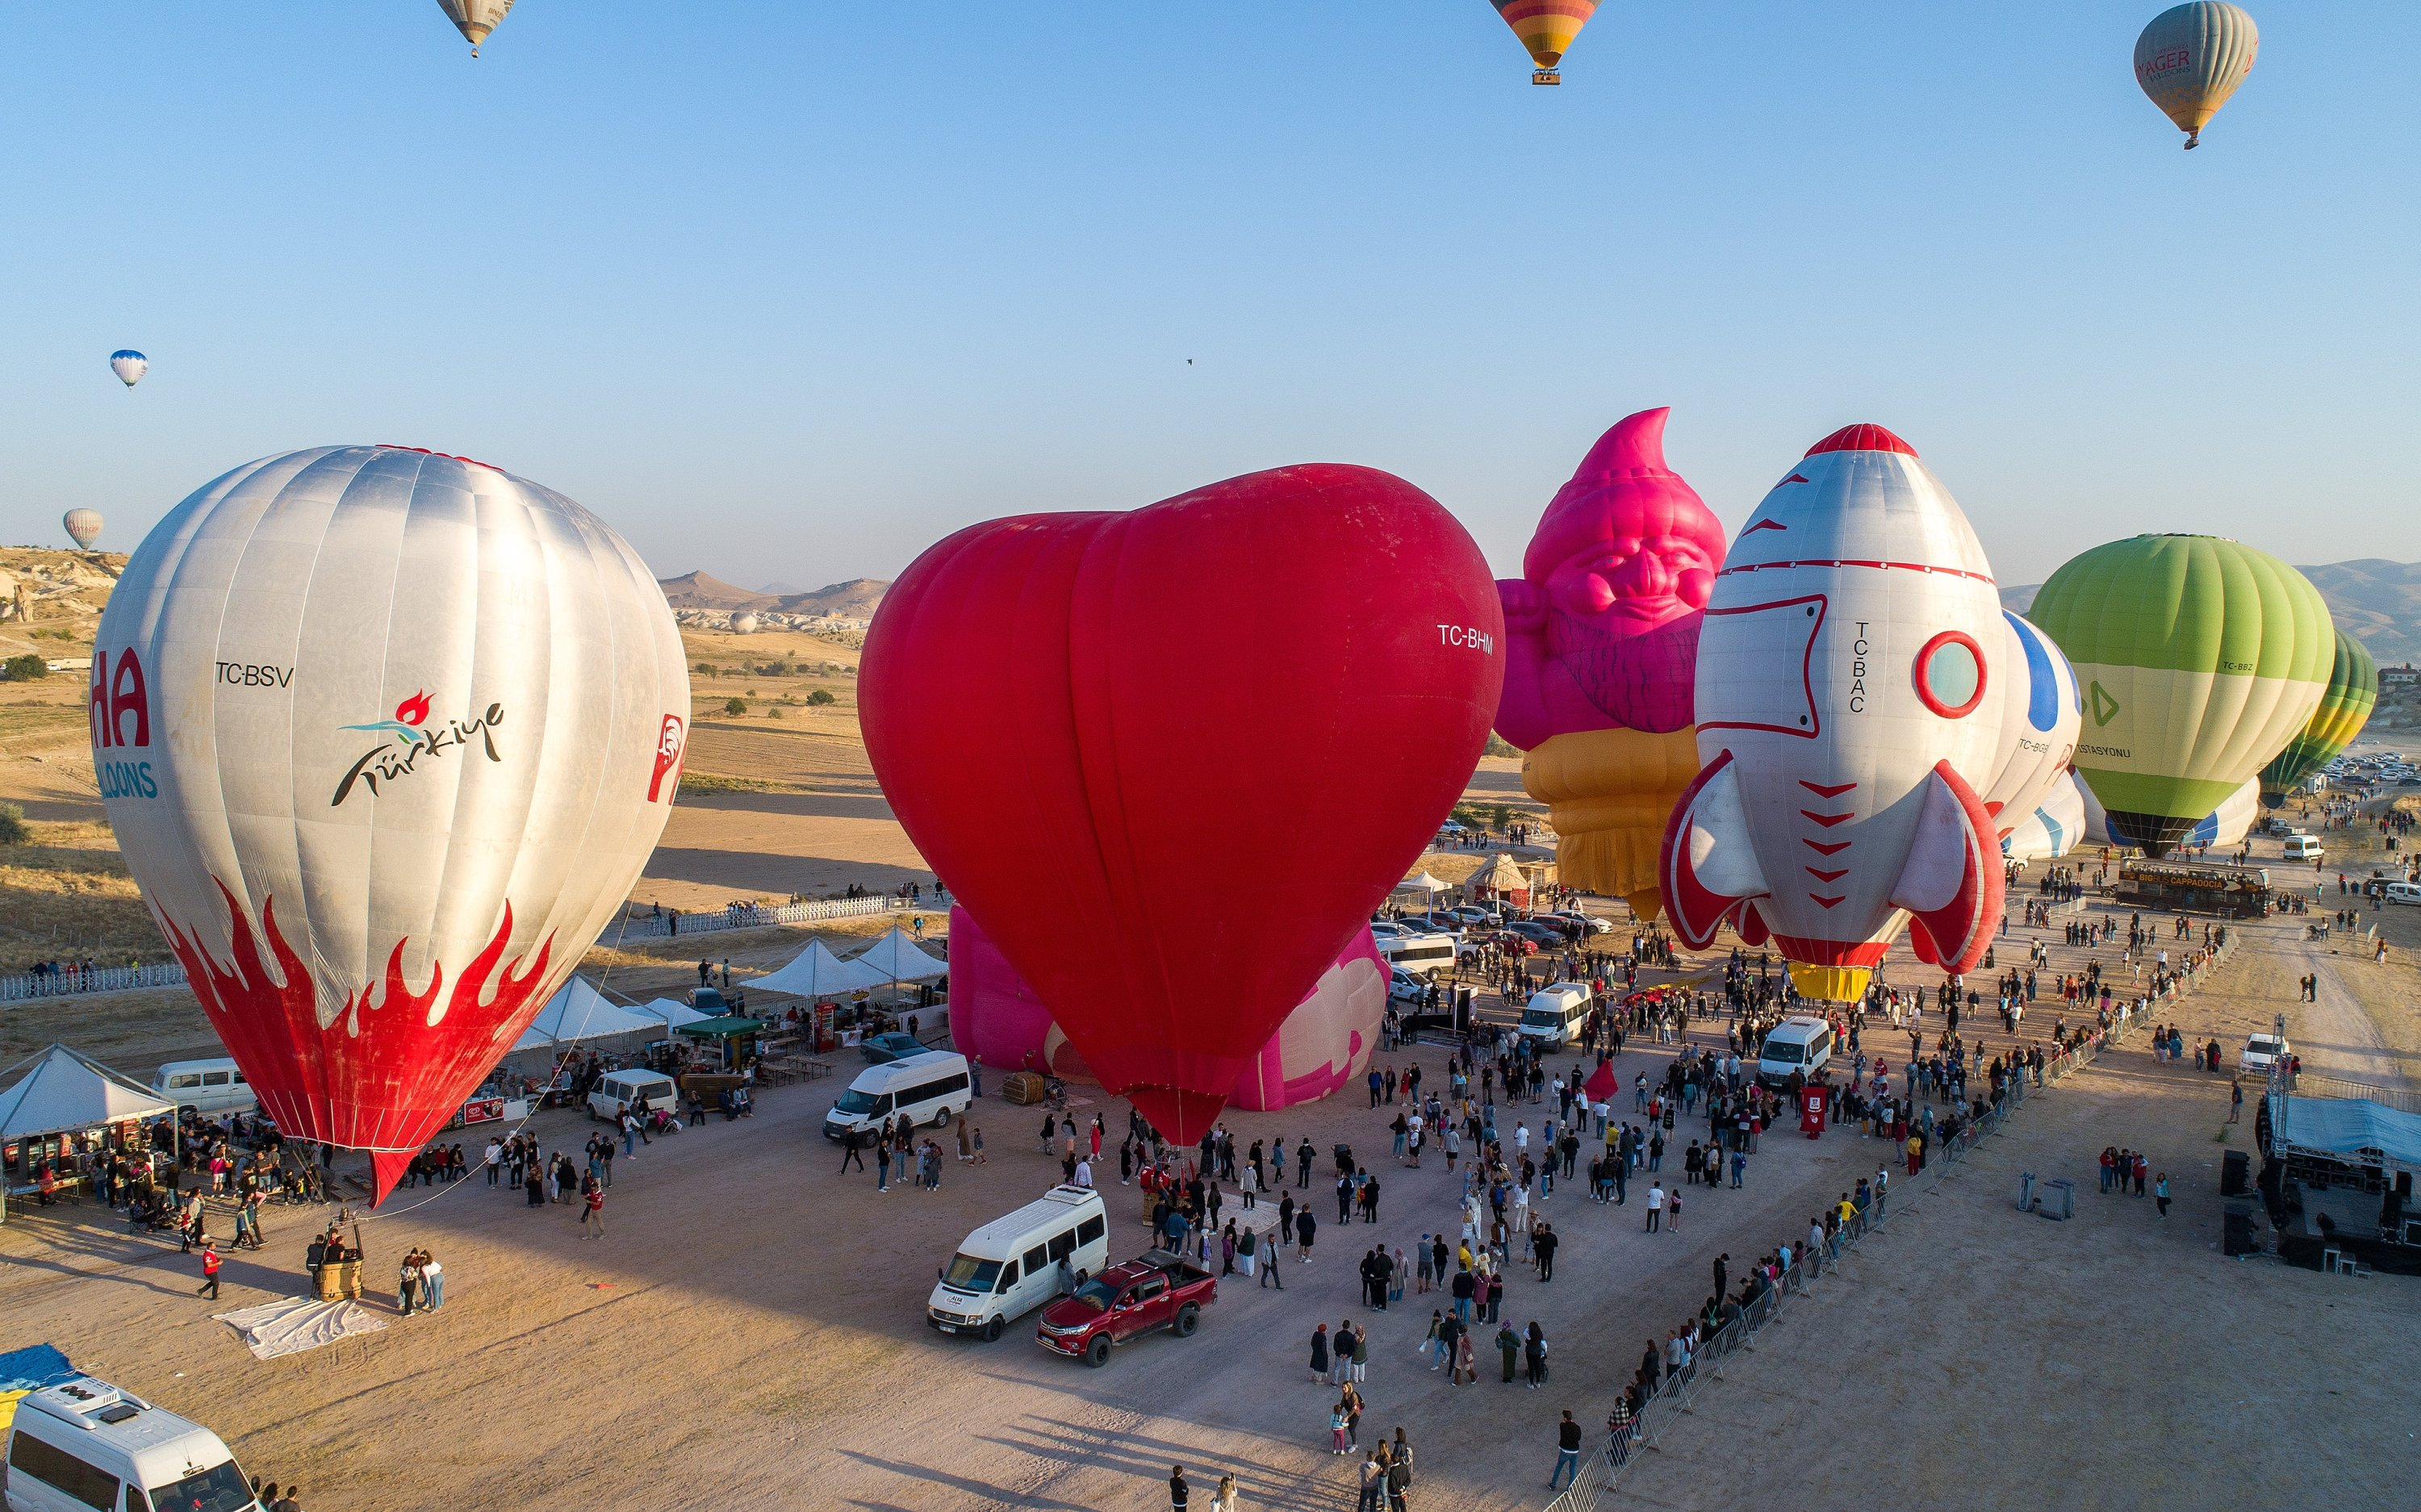 Hot air balloons prepare to take off to mark the start of an international hot air balloon festival in the Cappadocia region of Nevşehir province, central Turkey, Aug. 28, 2021. (AA Photo)